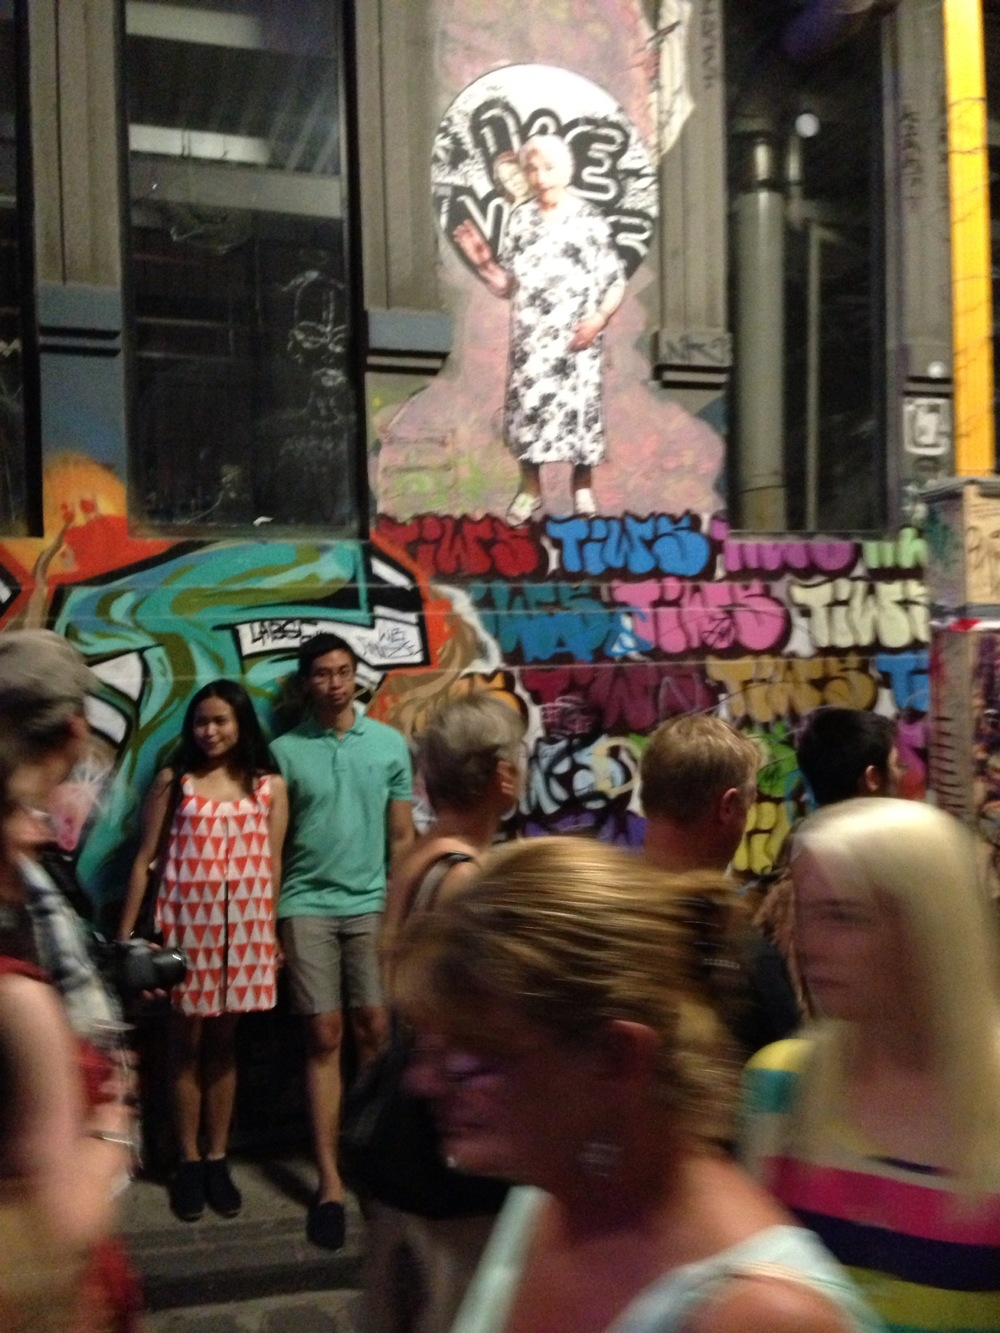 White Night Festival - graffiti alley